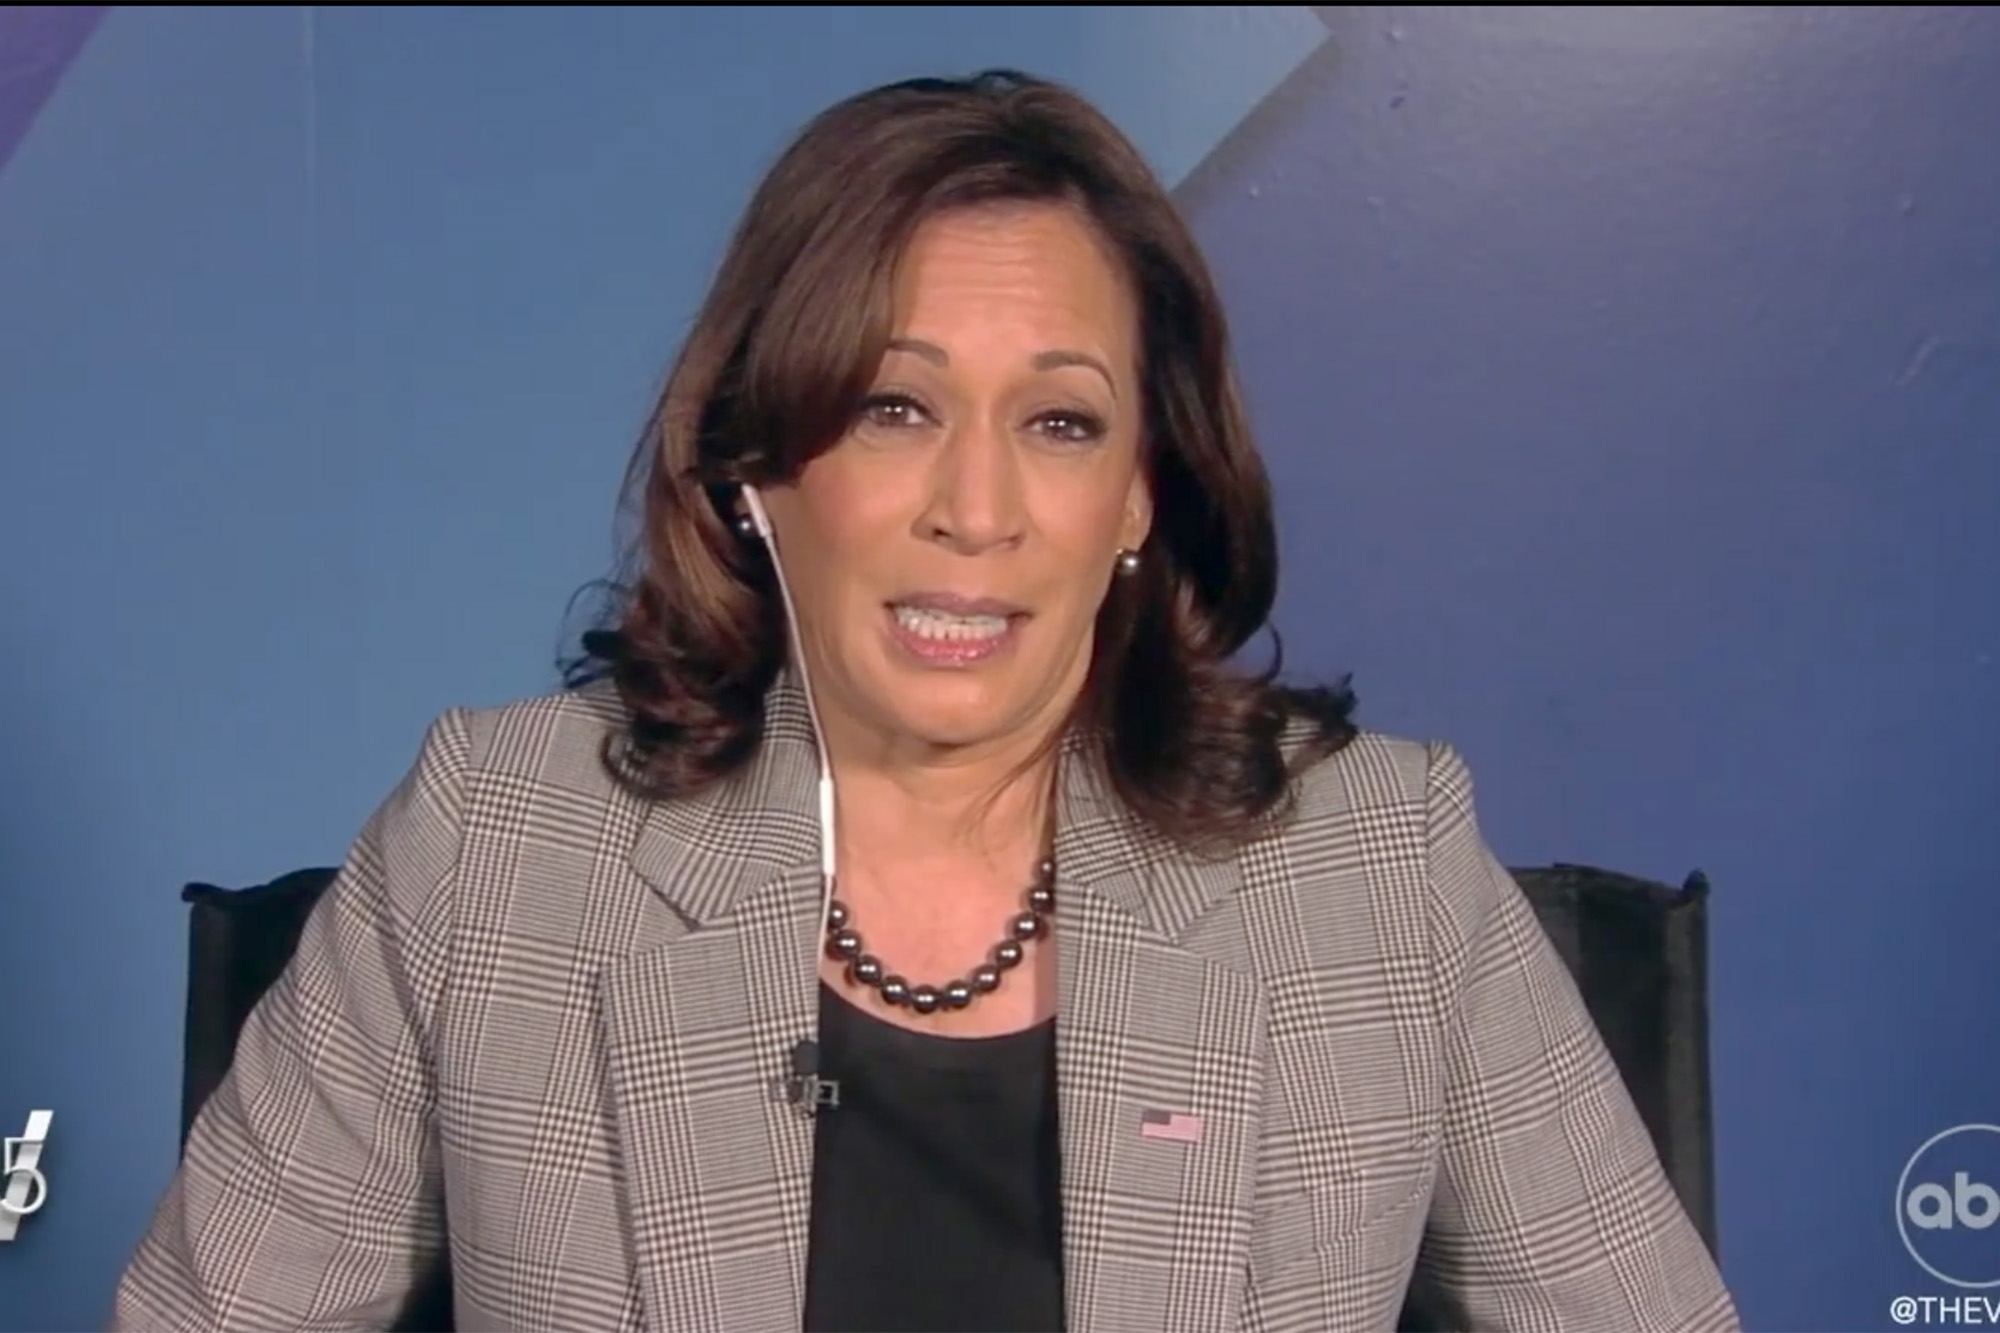 """Vice President Kamala Harris' scheduled live appearance on """"The View"""" was delayed Friday morning after two co-hosts tested positive for the coronavirus, their colleague Joy Behar told the show's viewers."""